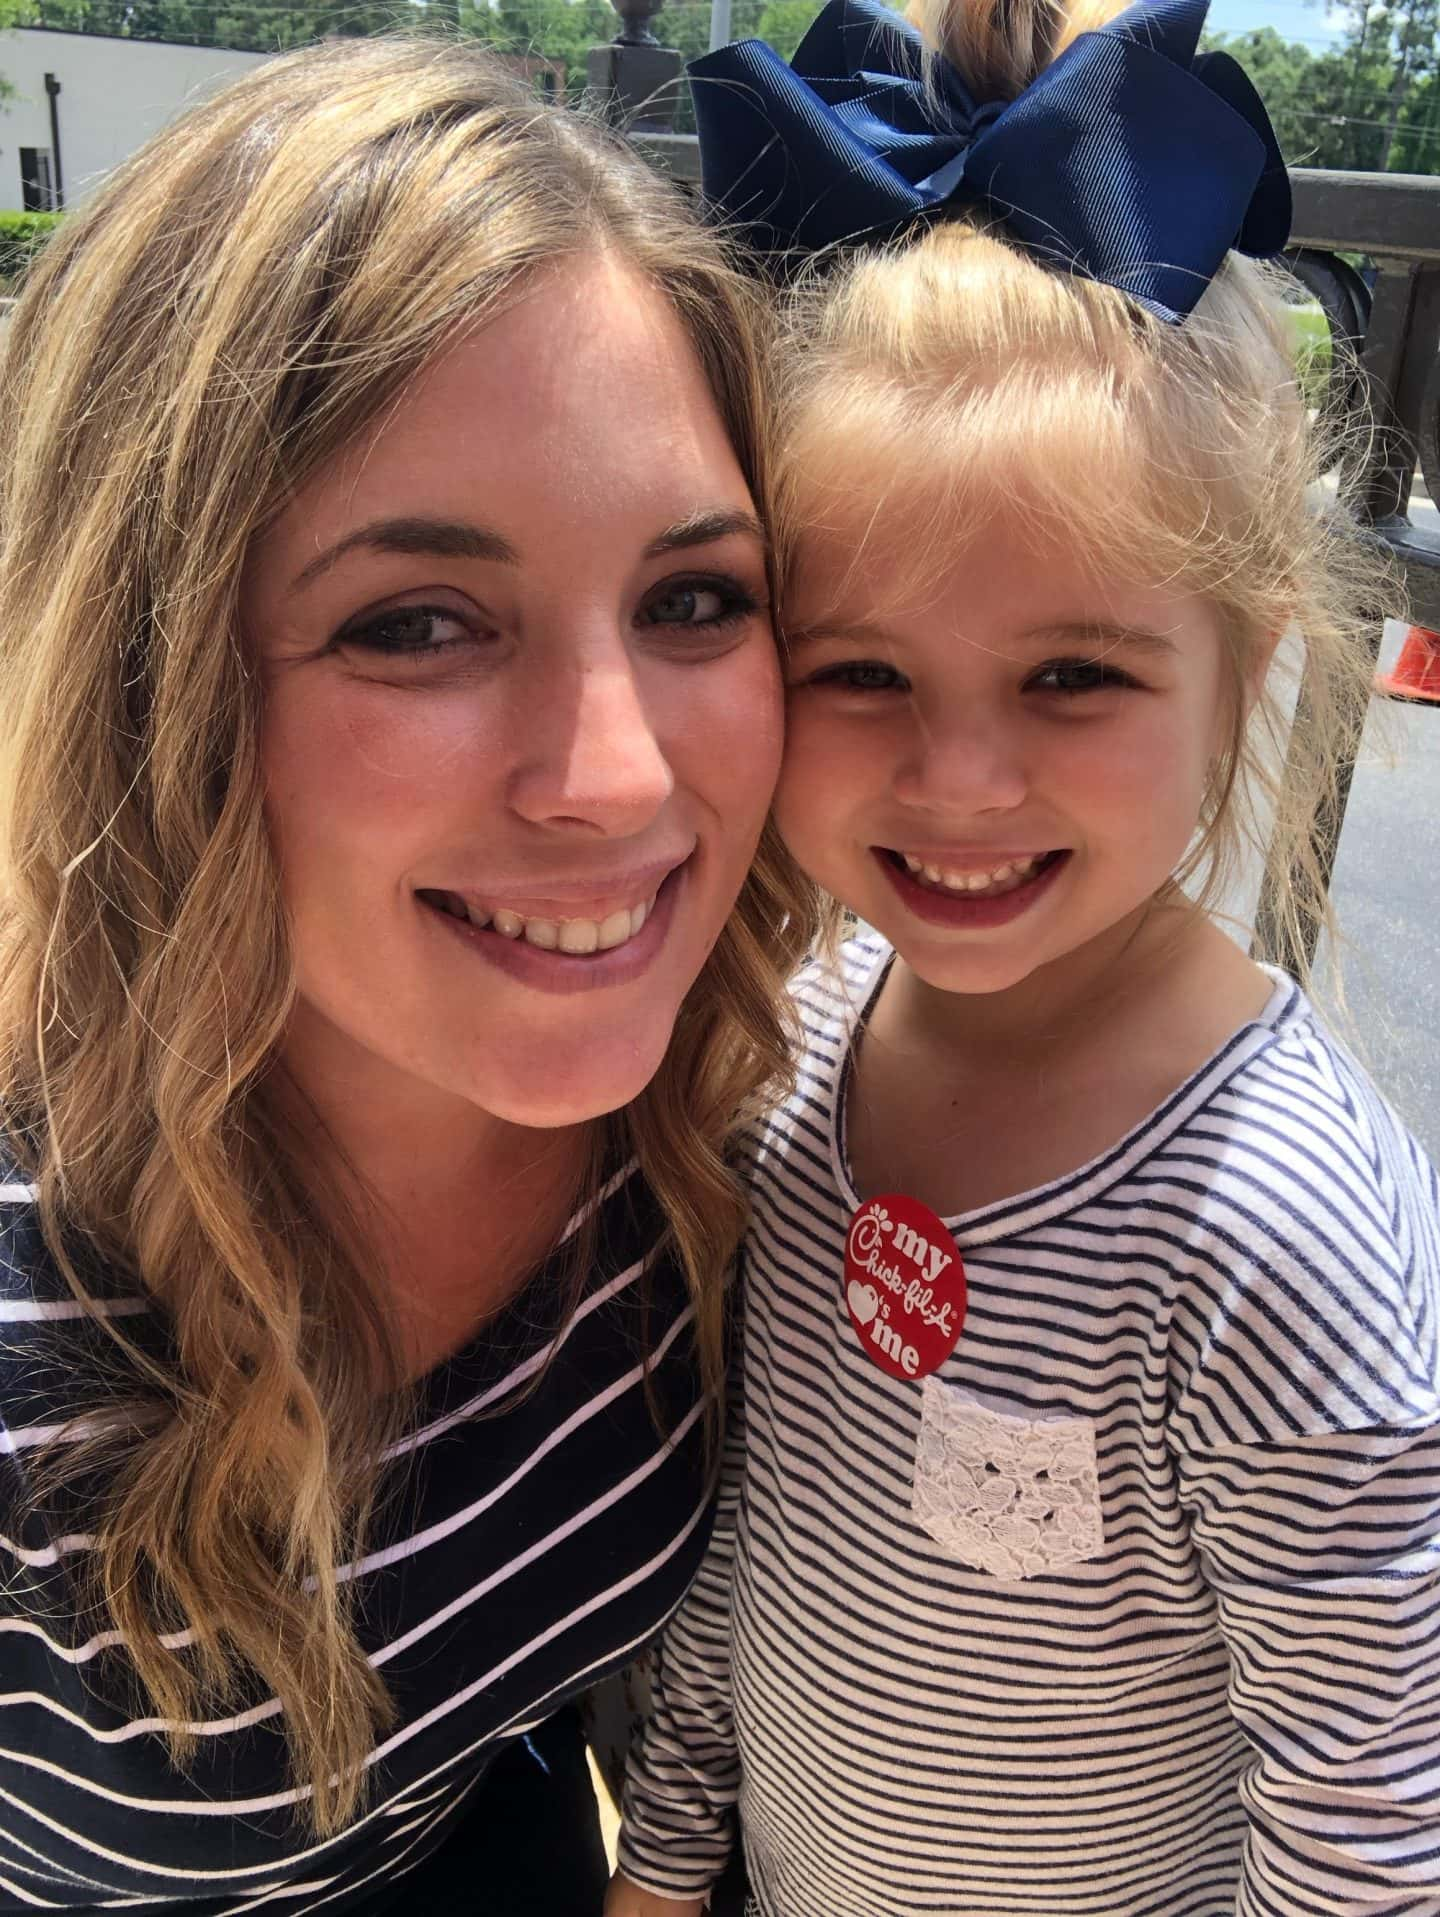 tess and mommy at cfa